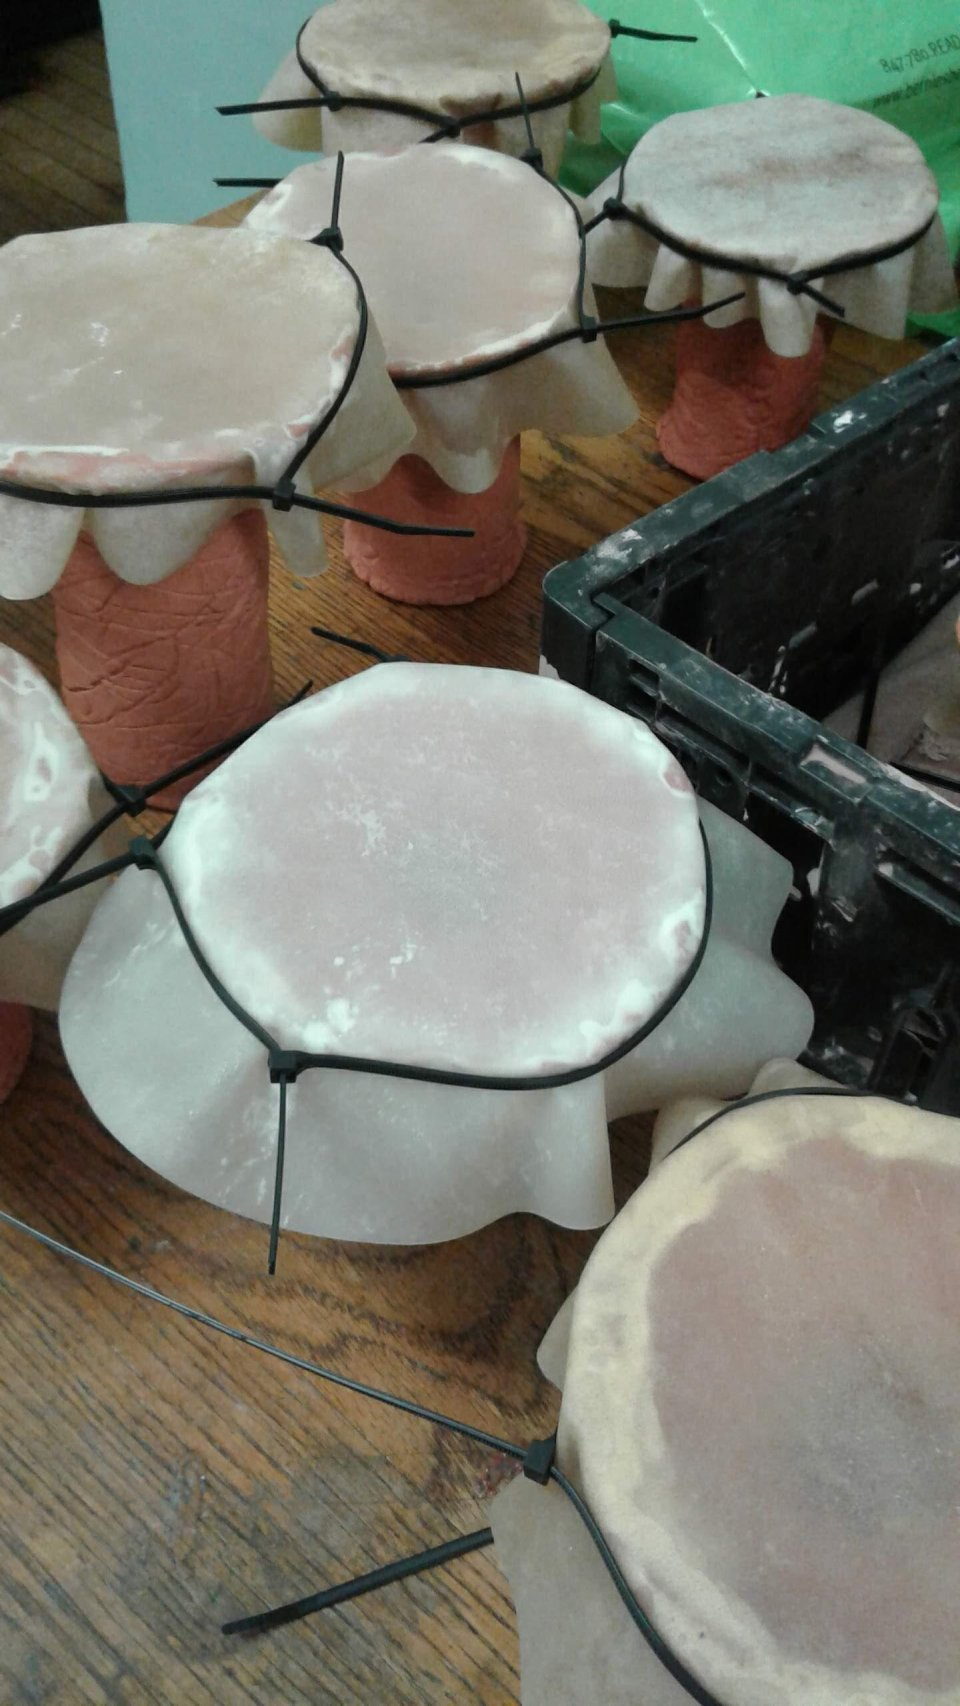 - Students constructed 3 different sound makers out of terra cotta clay. These included bells, wherein students made pinched bell forms and clappers, rattles, that involved making a hollow form by joining 2 pinch pots and filling it with clay beads, and hand drums made by joining slab and press-molded forms for the base, and then stretching a goat skin over the base after firing.